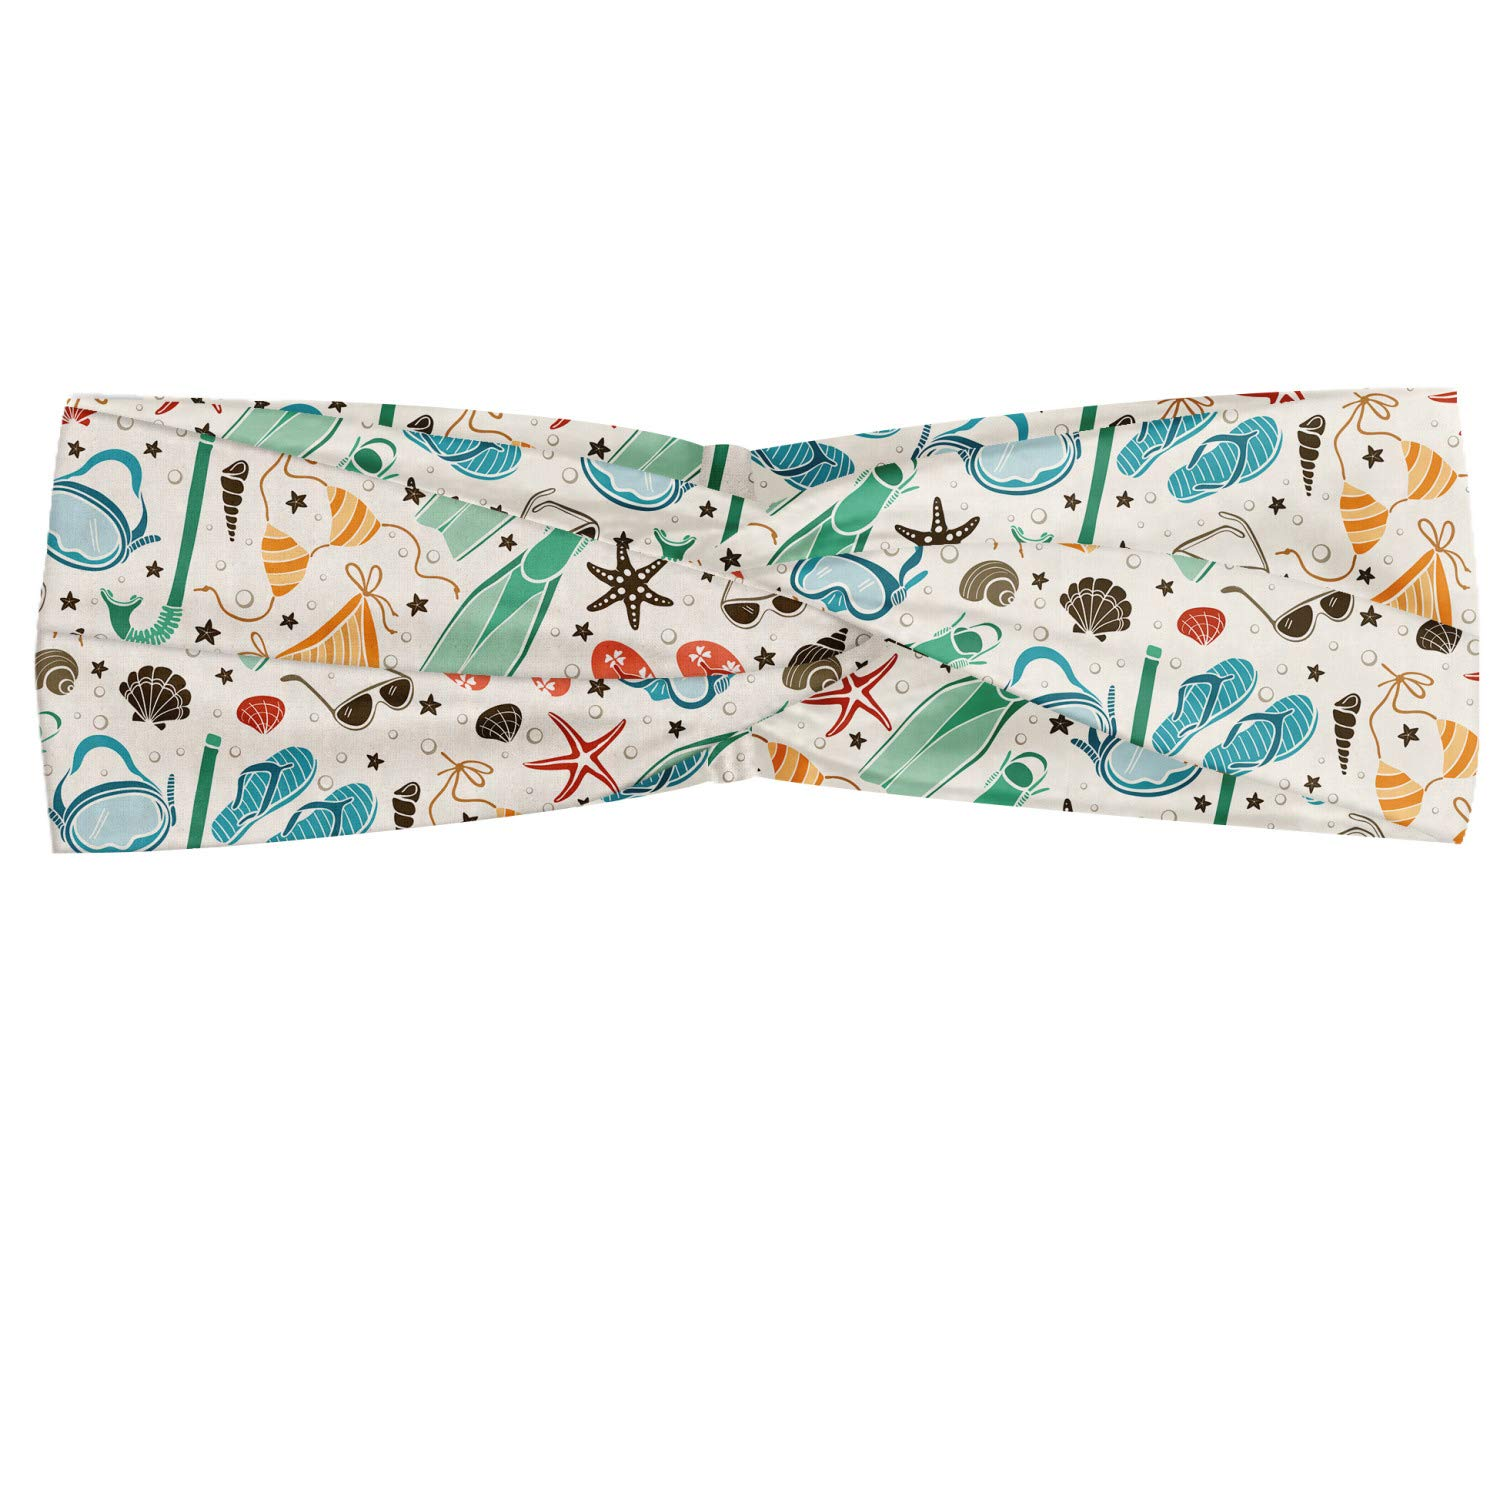 Ambesonne Summer Headband, Continuous Beach Accessories in Vintage Colors Swimsuits Shells Flippers, Elastic and Soft Women's Bandana for Sports and Everyday Use, Ivory Multicolor